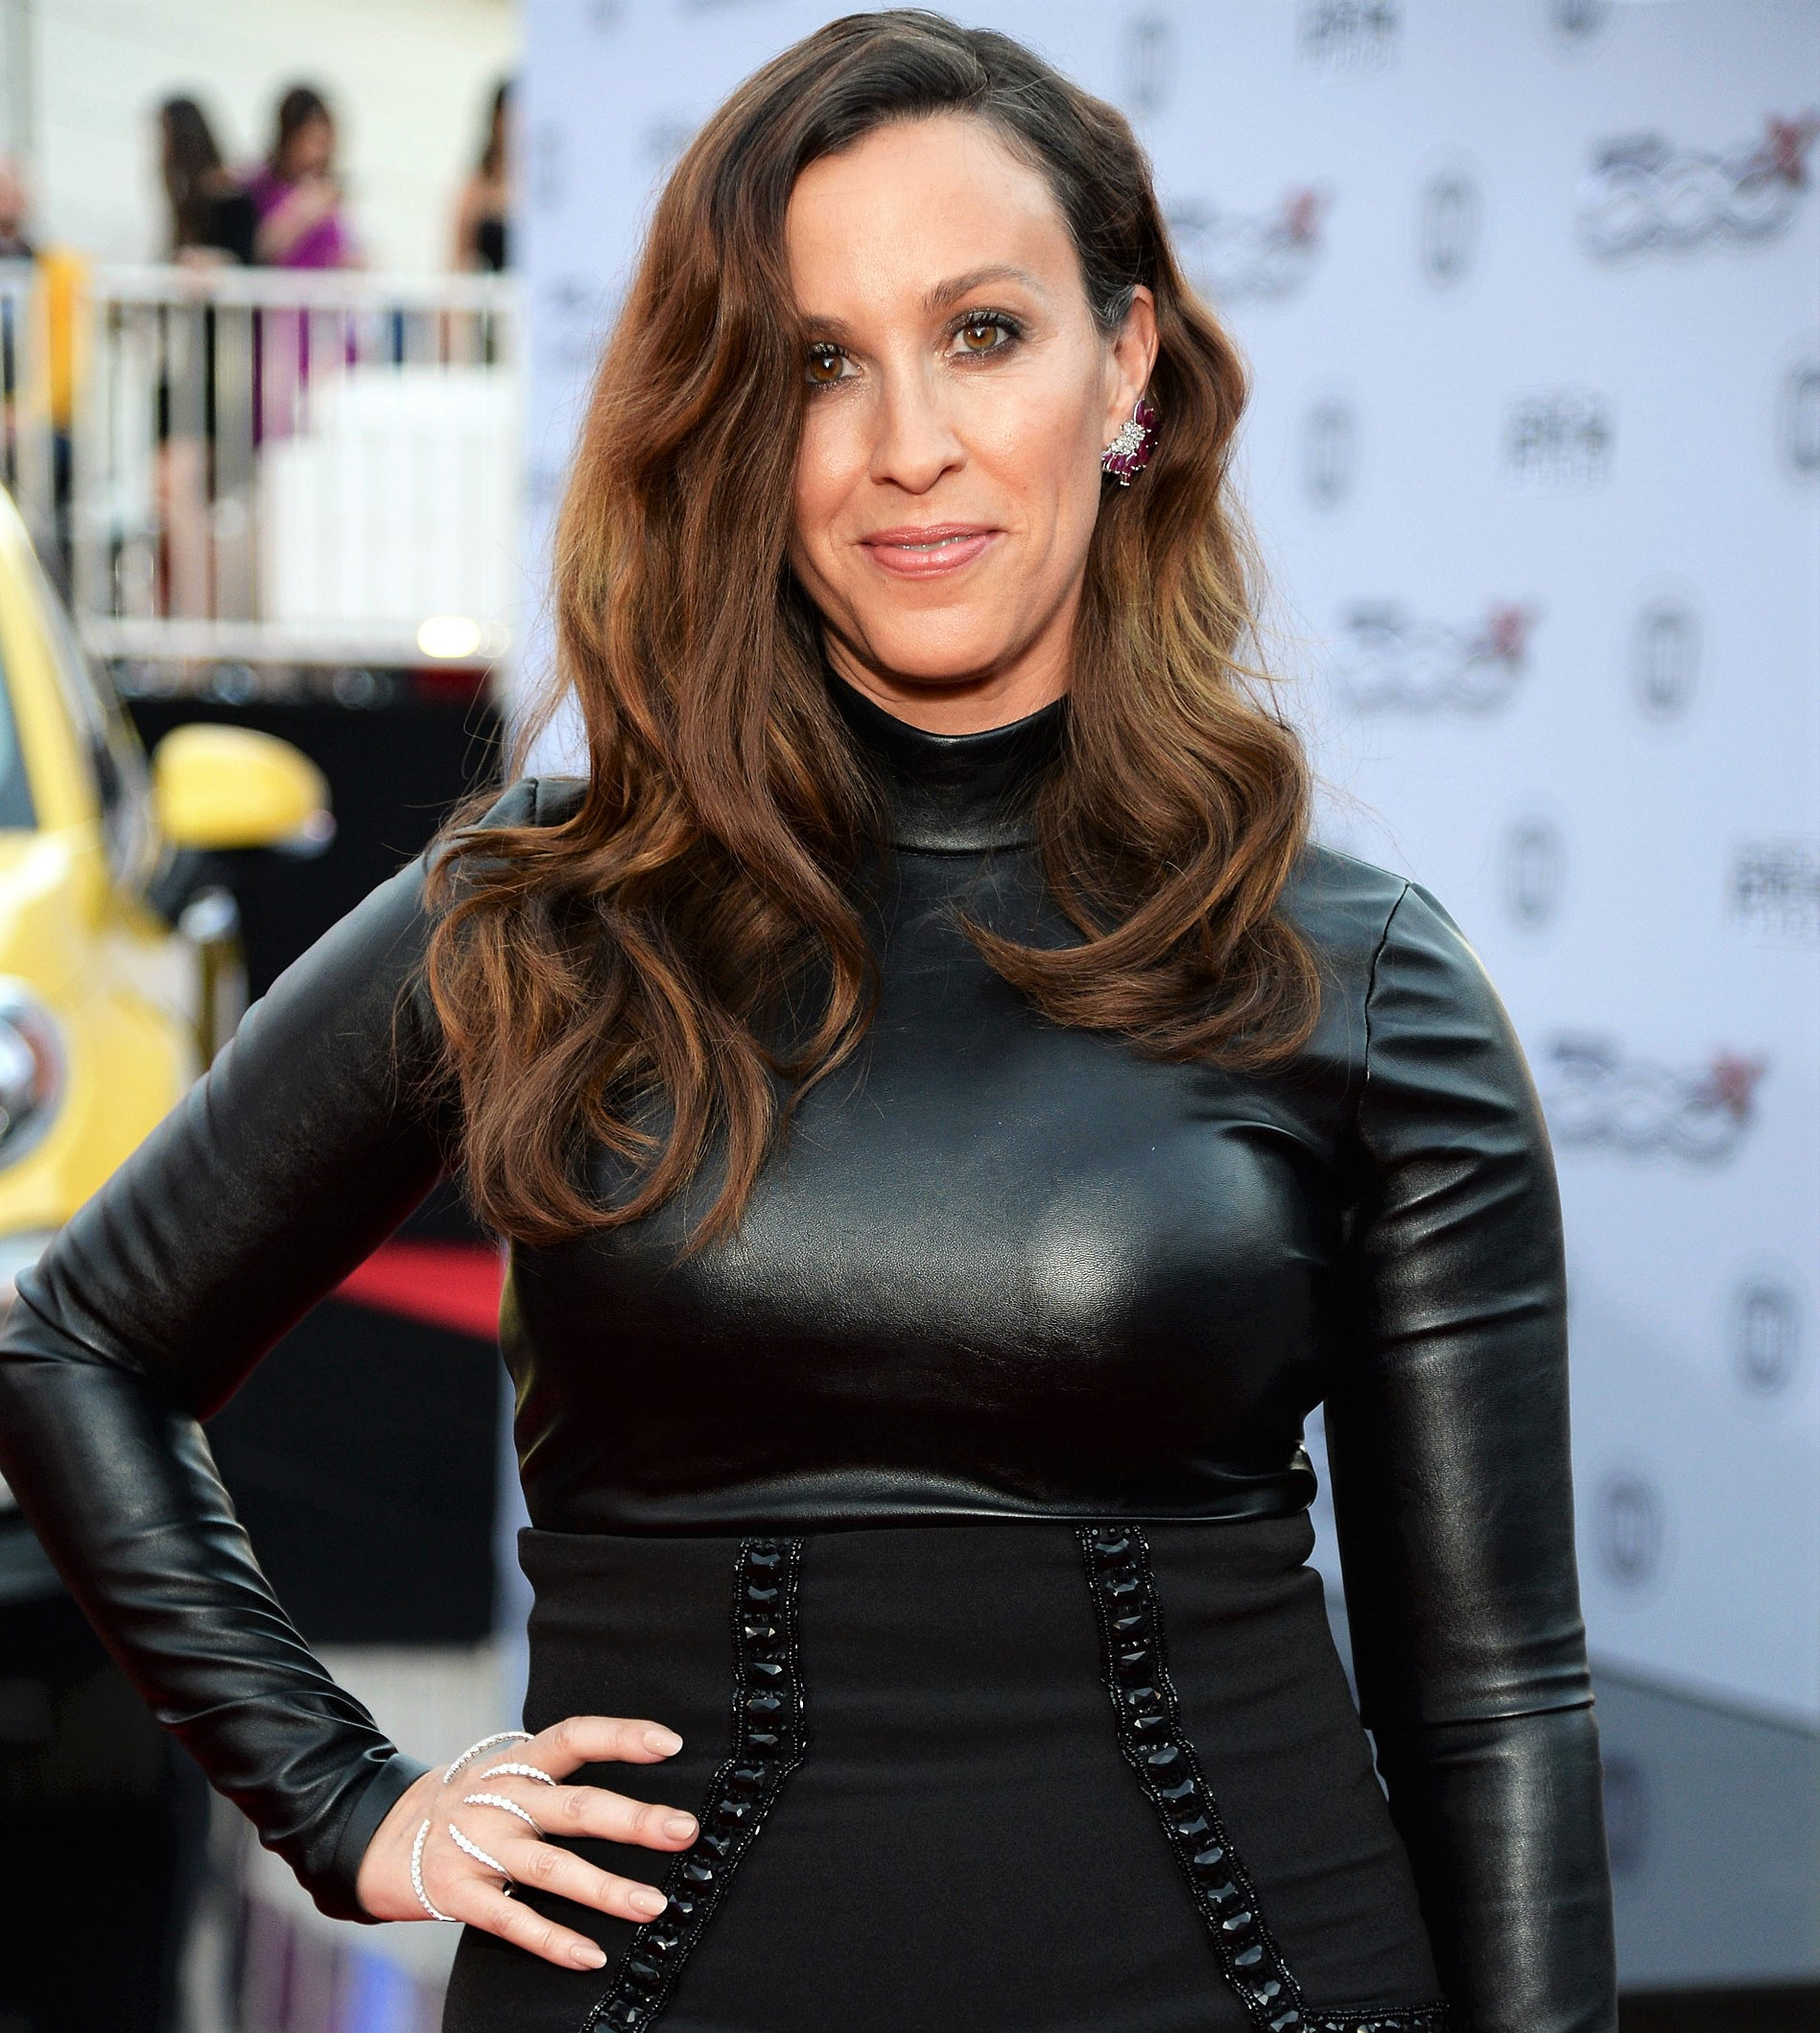 You Oughta Know — Alanis Morissette Is Pregnant! Singer, 44, Expecting Third Child